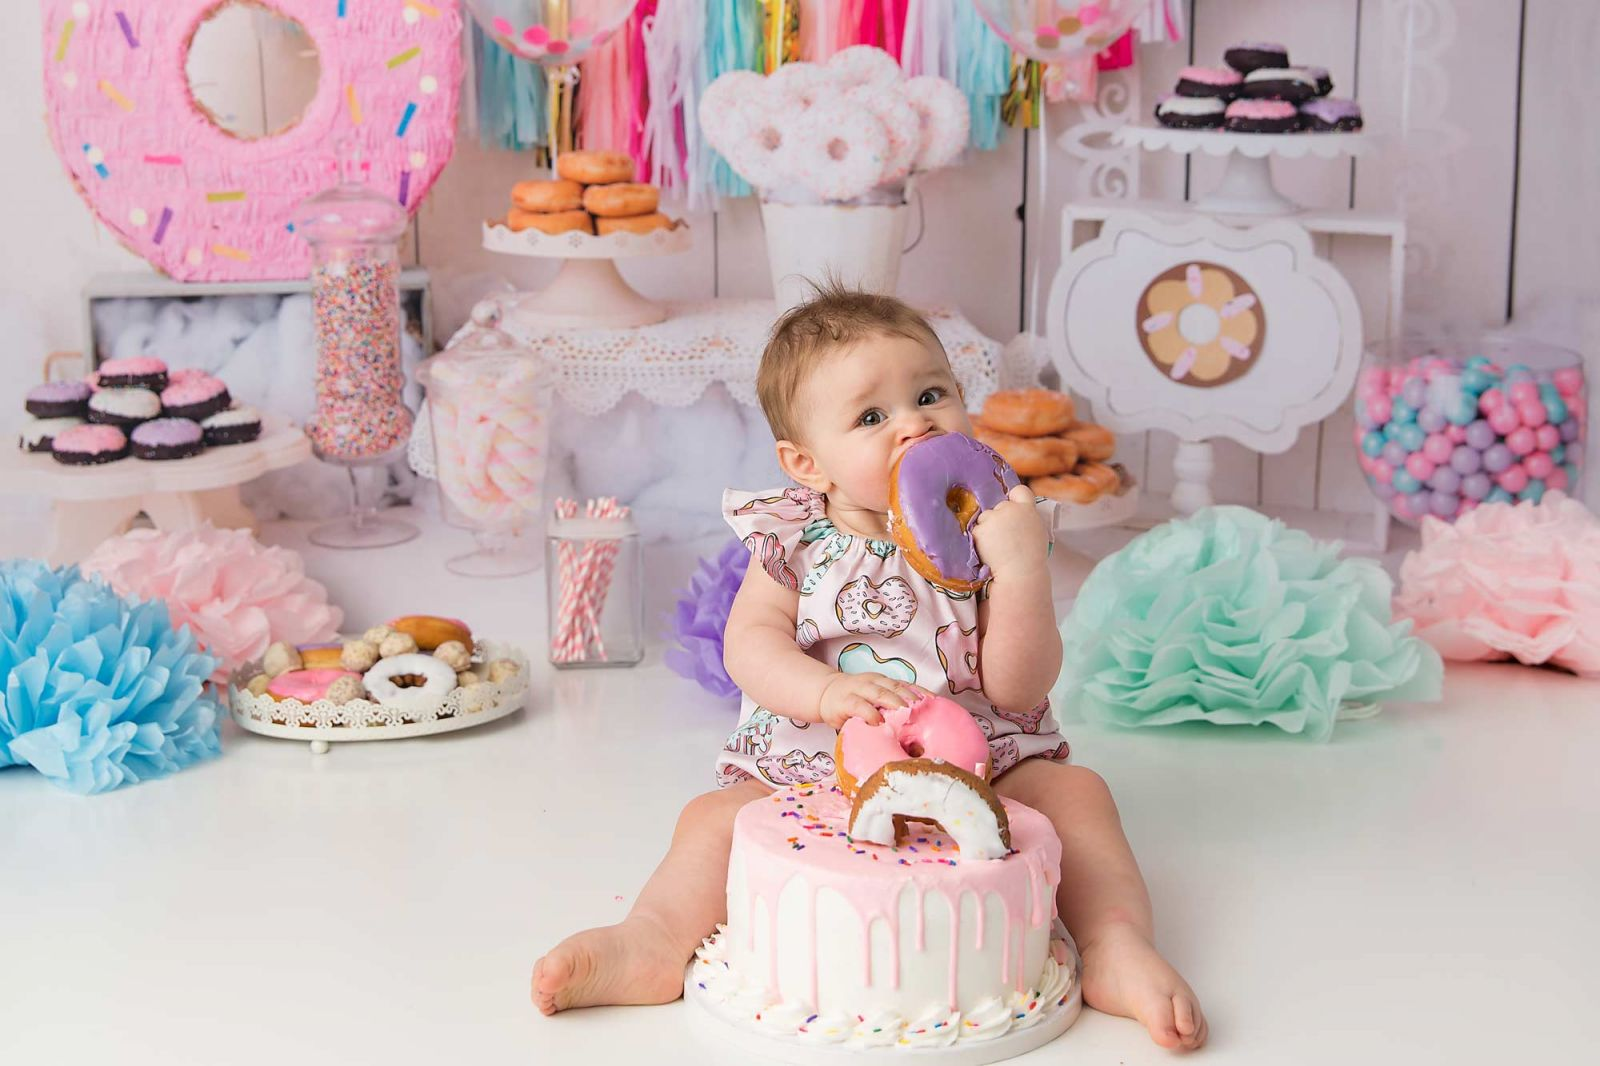 Baby girl eating a donut during donut themed cake smash by Pueblo photographer K.D. Elise Photography.